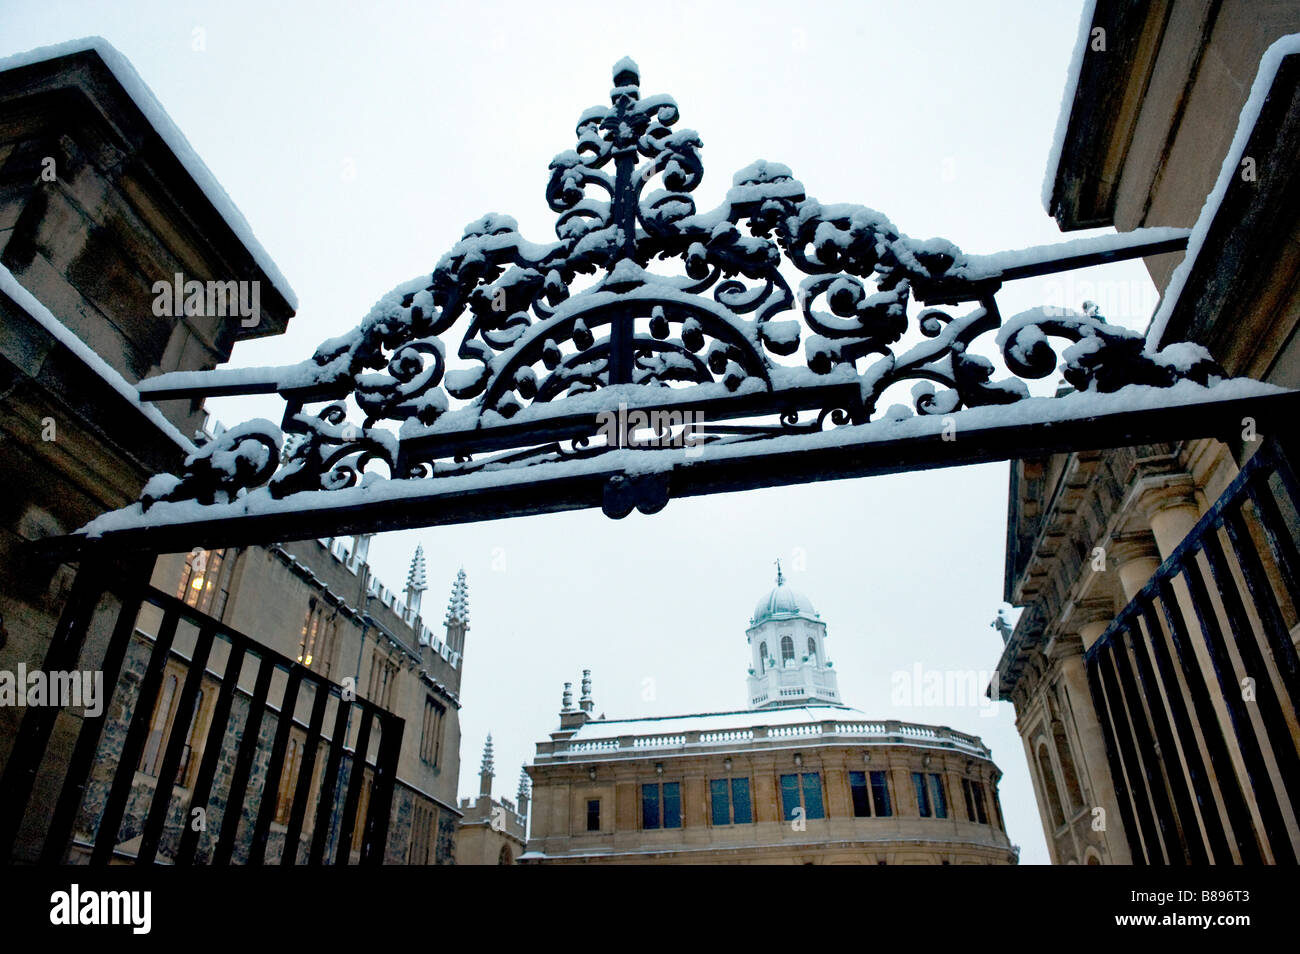 The gate leads to Sheldonian Theatre a Wren Building with Clarendon Building on the right in the snow Stock Photo